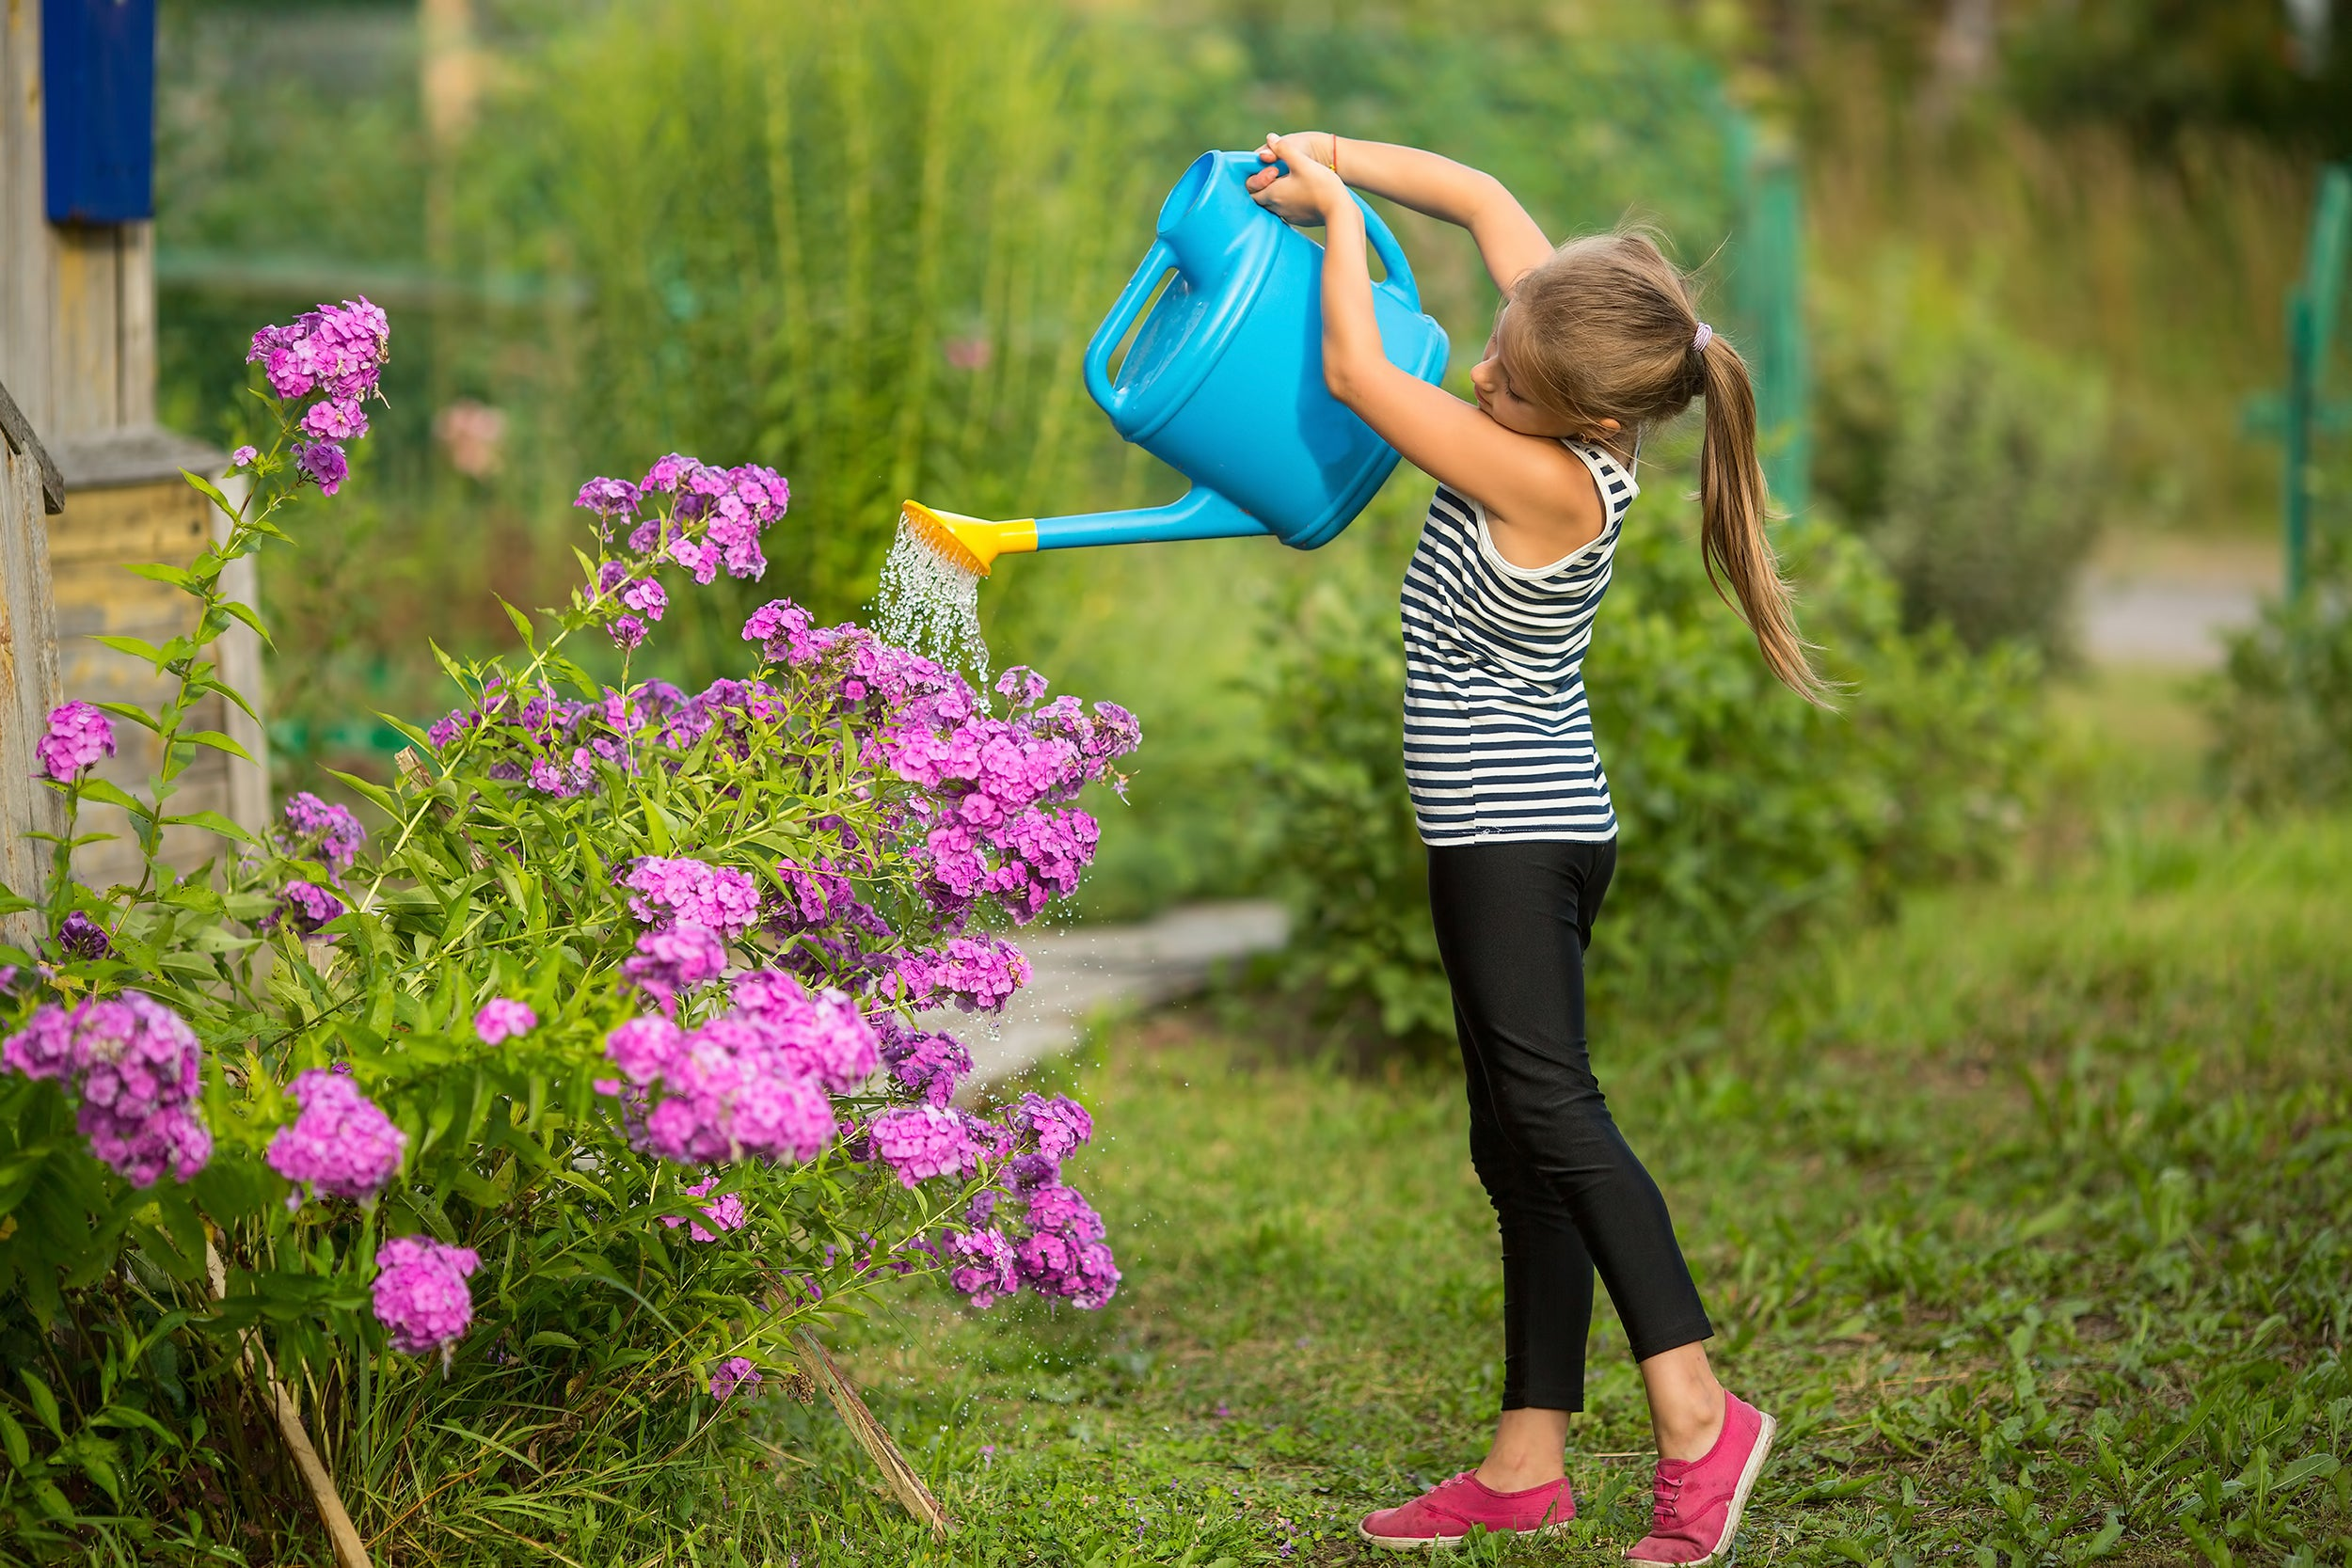 Random Acts of Kindness Ideas for Kids - doing other peoples chores like watering plants